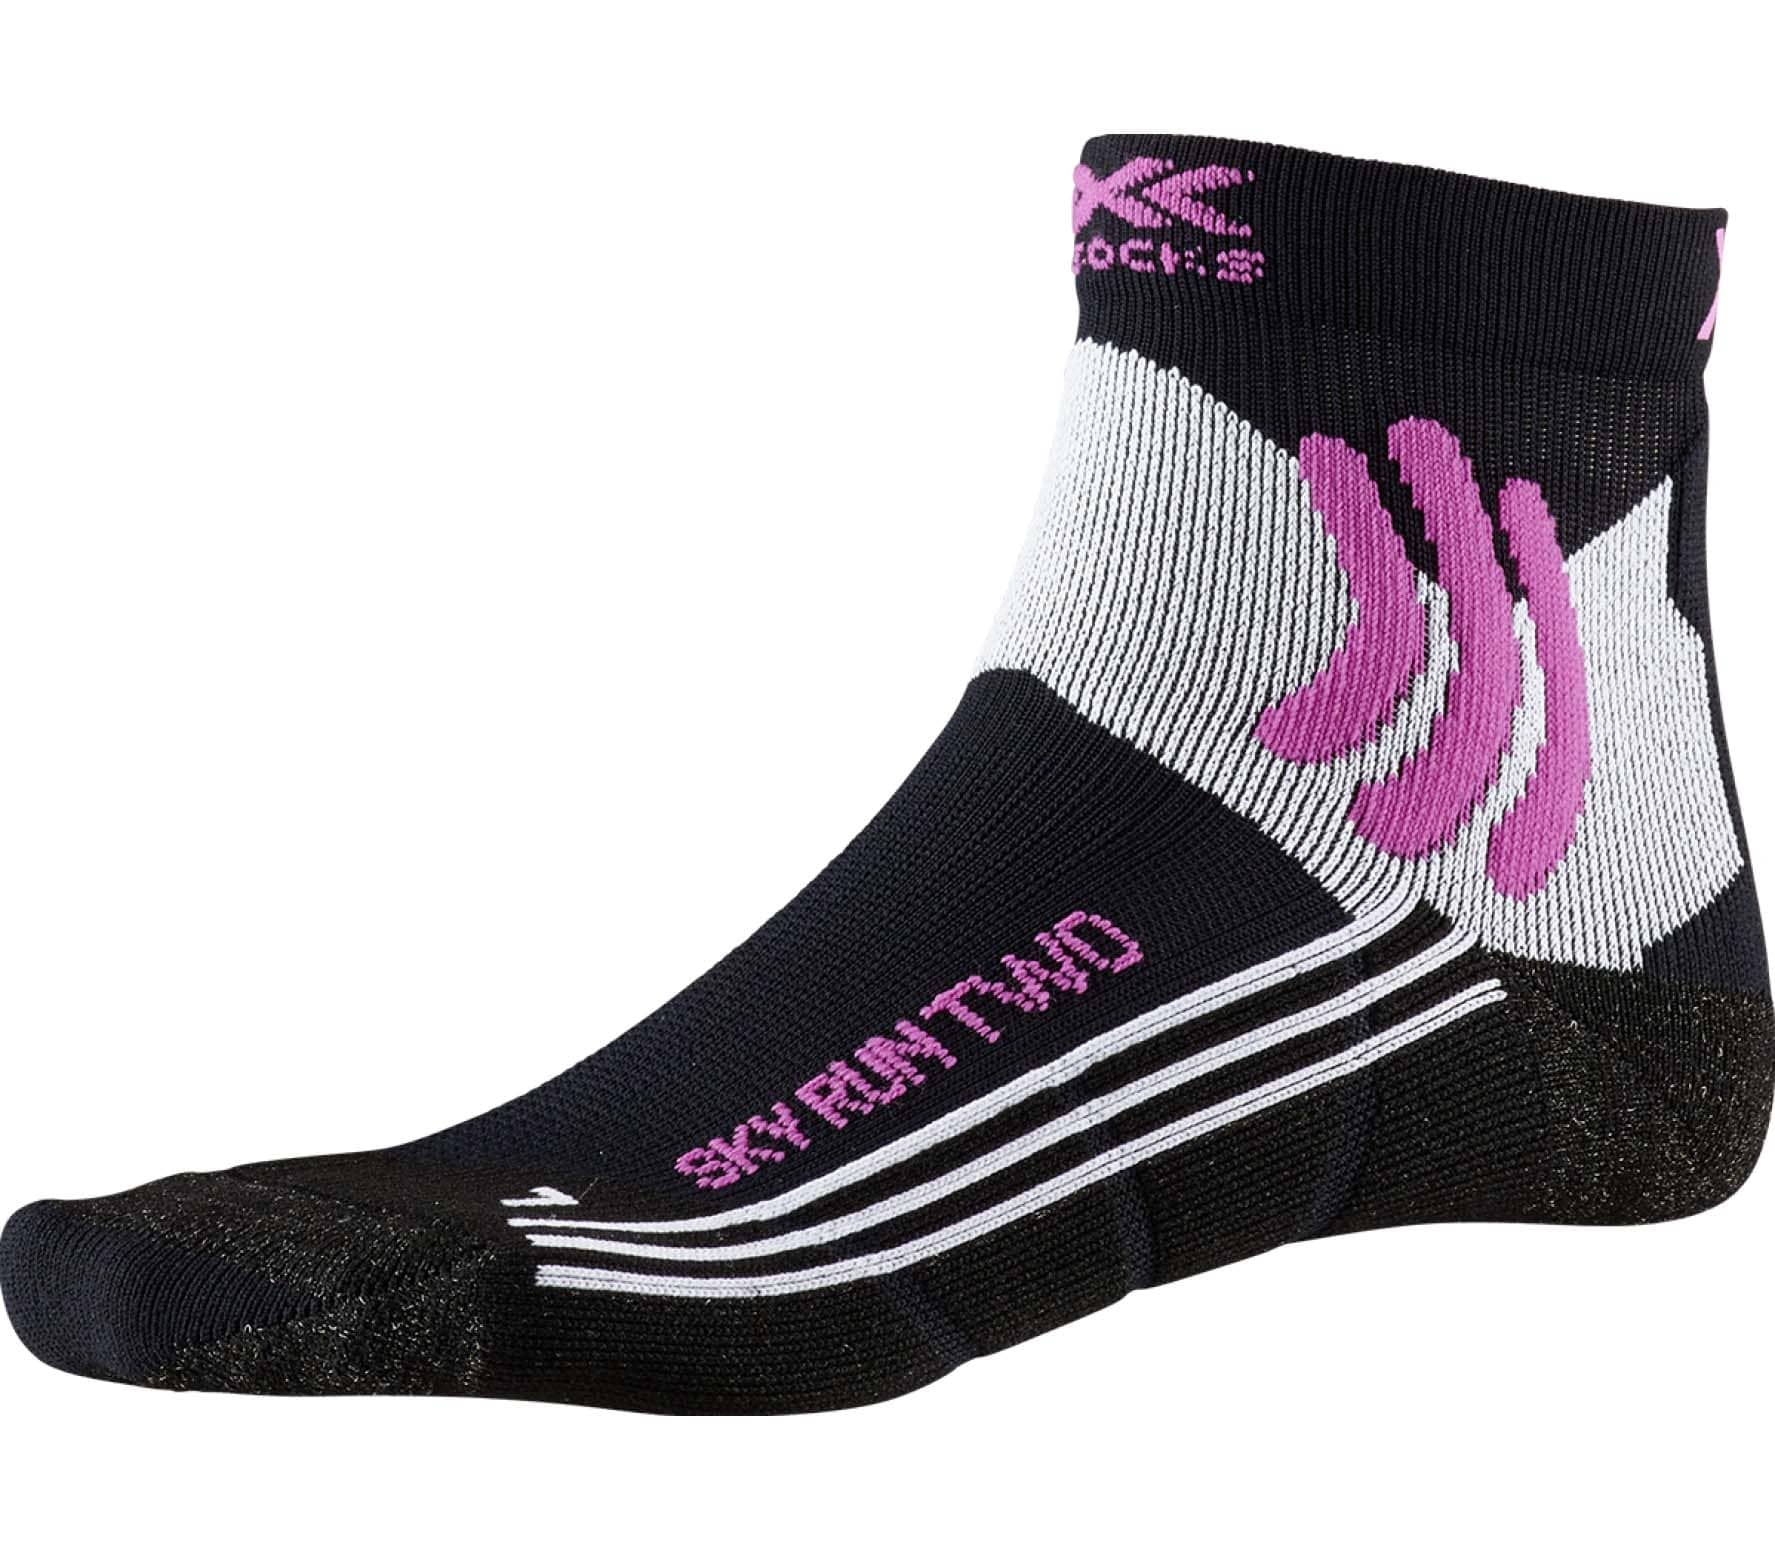 X-Bionic - Sky Two women's socks (black)